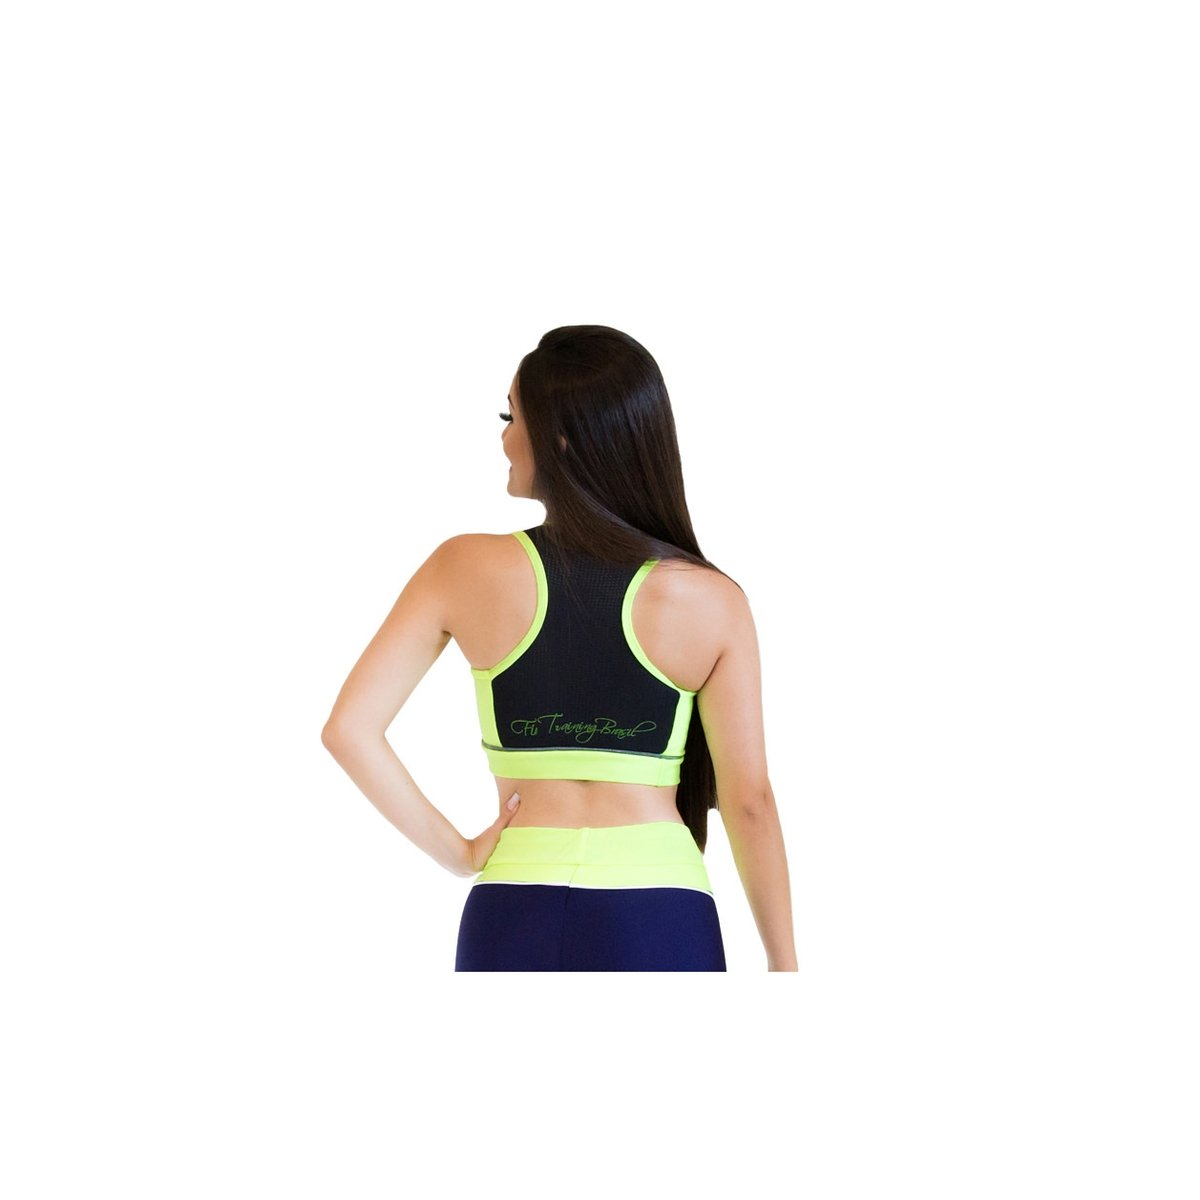 Forever Top Fit Limão Top Brasil Training Verde Training Fit wzYWqAx7p